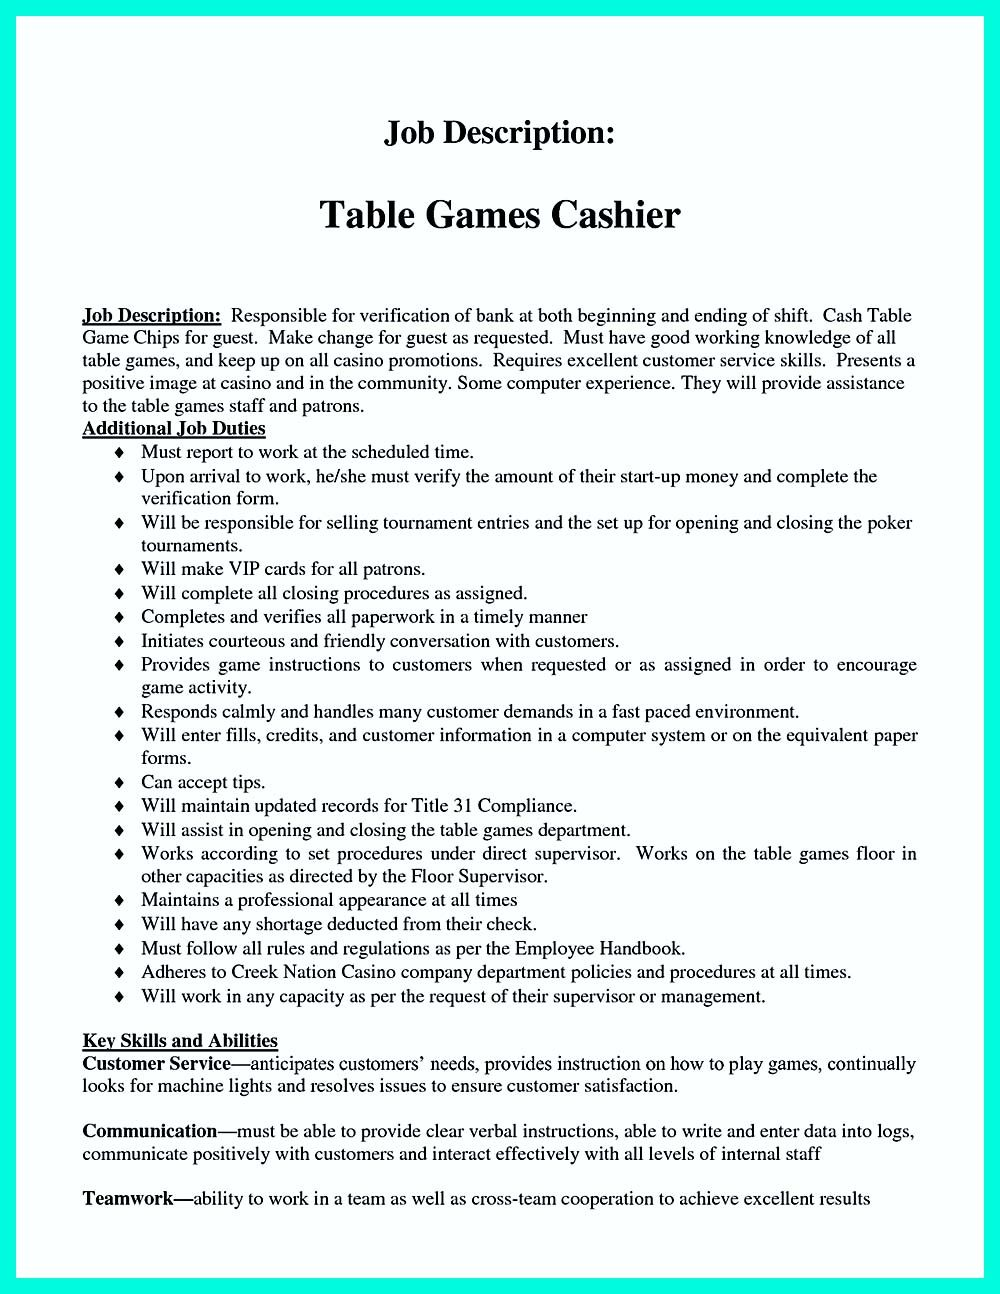 Cashier Description For Resume If You Want To Make A Great And Impressive Cashier Resume Make